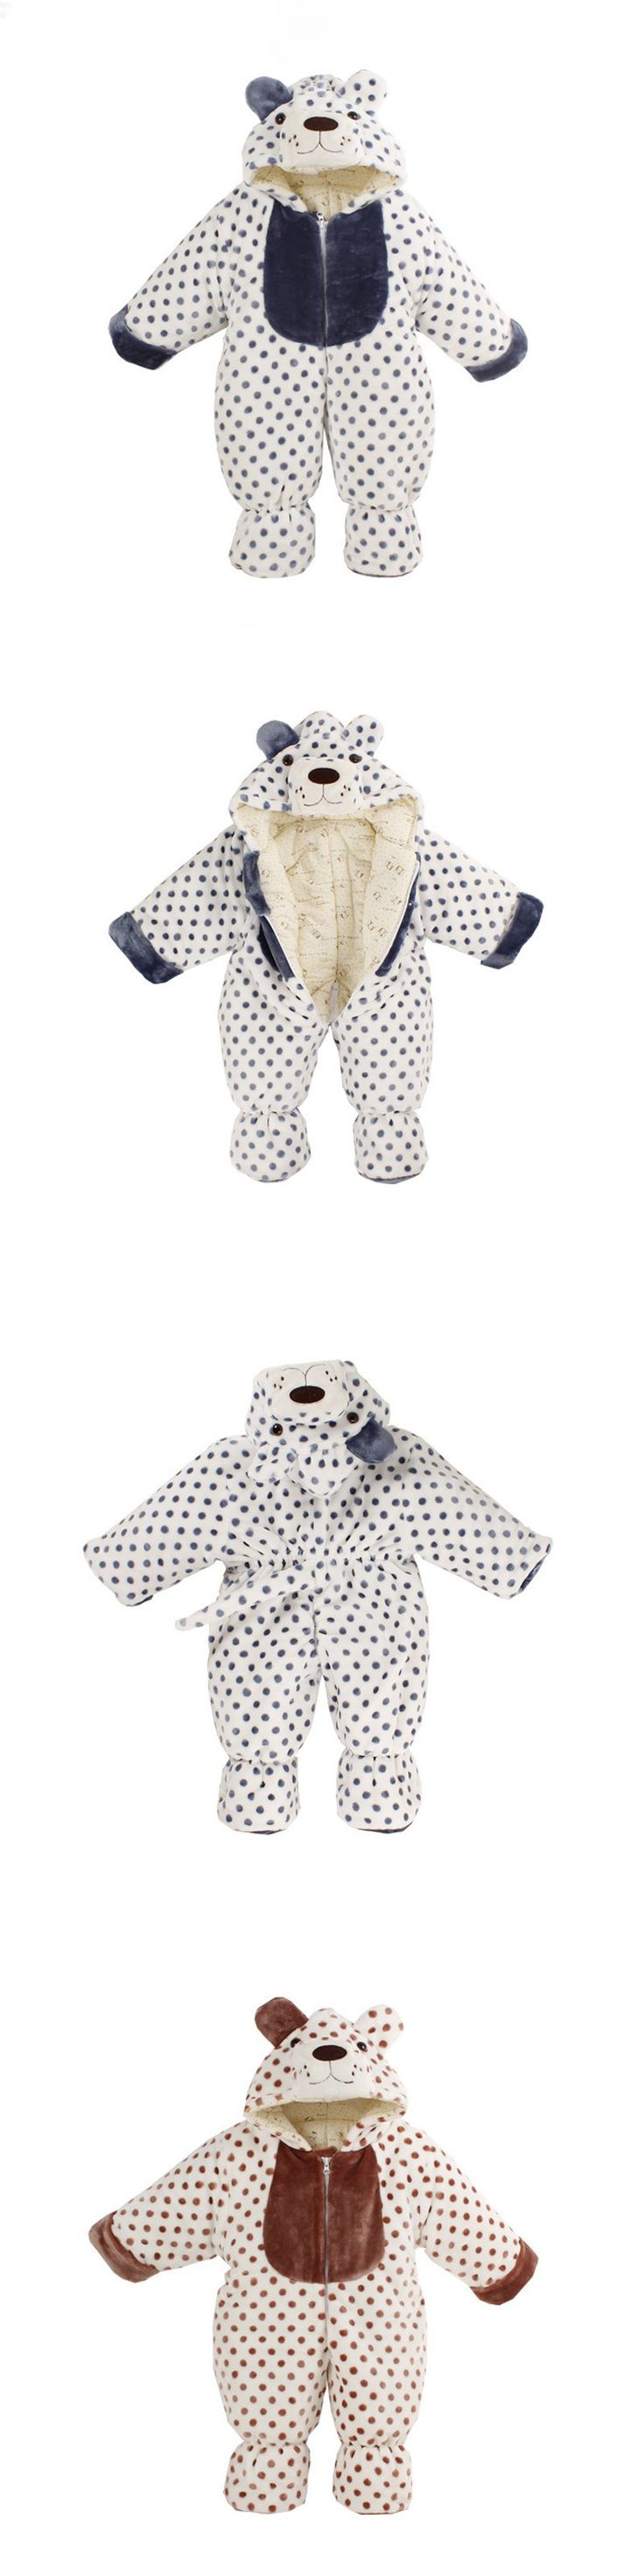 Body with Long Sleeves Animal Tiger Bear Fleece Baby Romper Warm Overalls for Baby Newborn Winter Clothes Infant Clothing CL0431